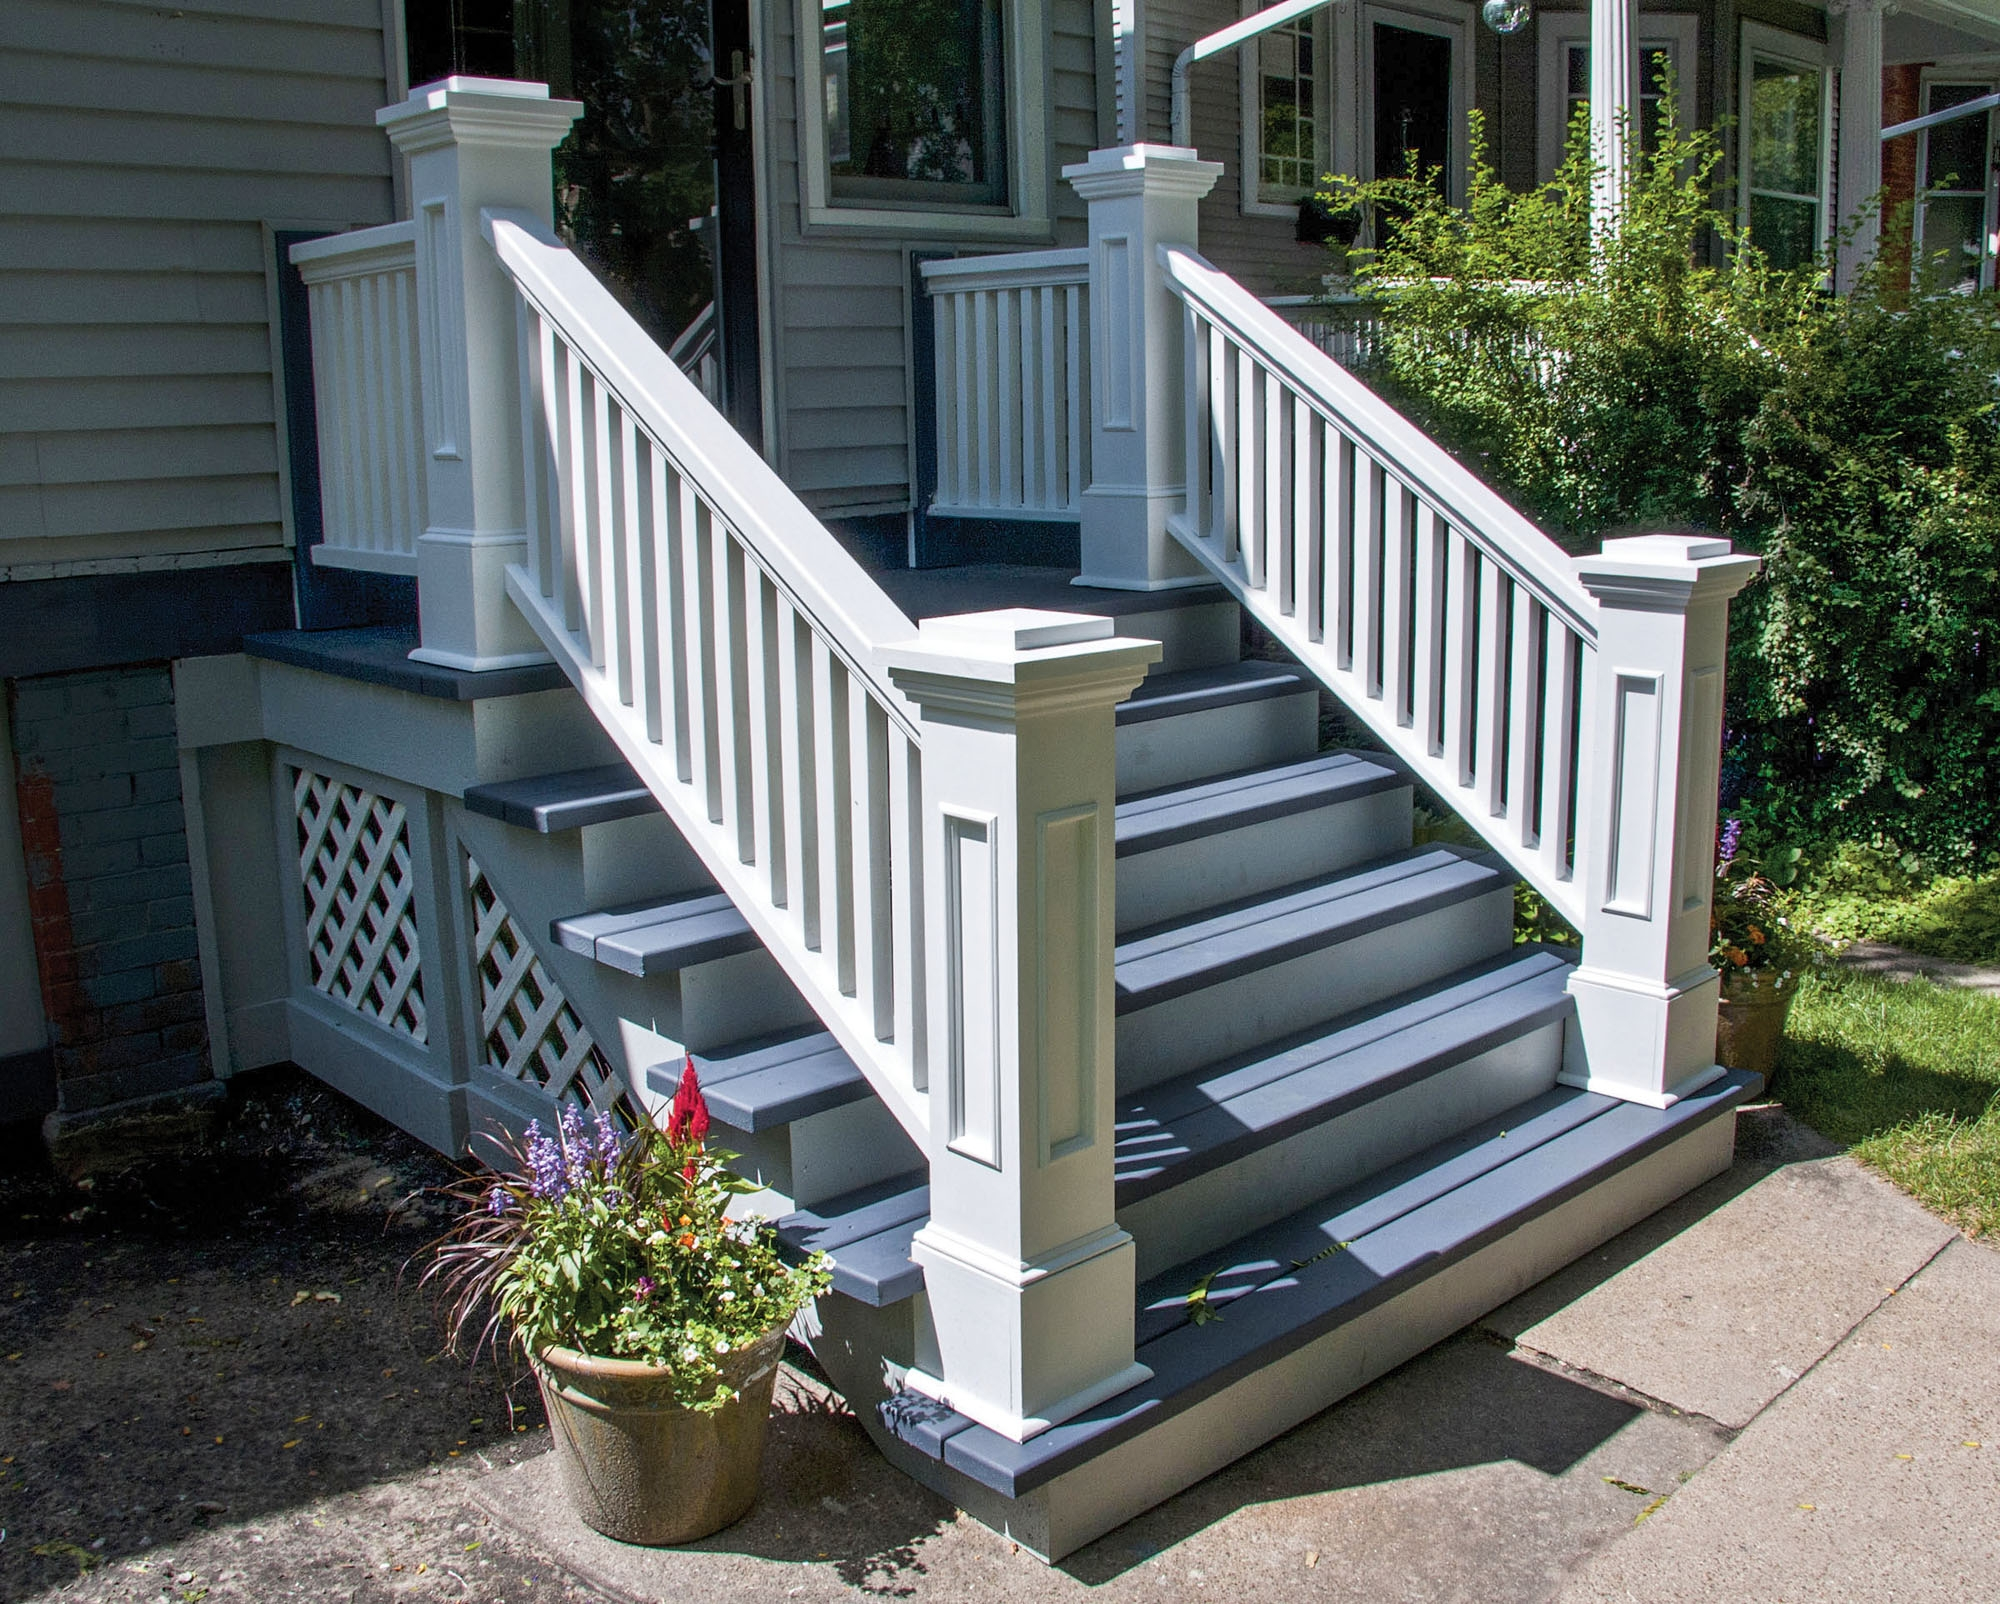 Graceful Stoops Entry Steps Old House Journal Magazine | Replacing Concrete Steps With Wood | Stringers | Stair Railing | Composite Decking | Pouring Concrete | Concrete Slab